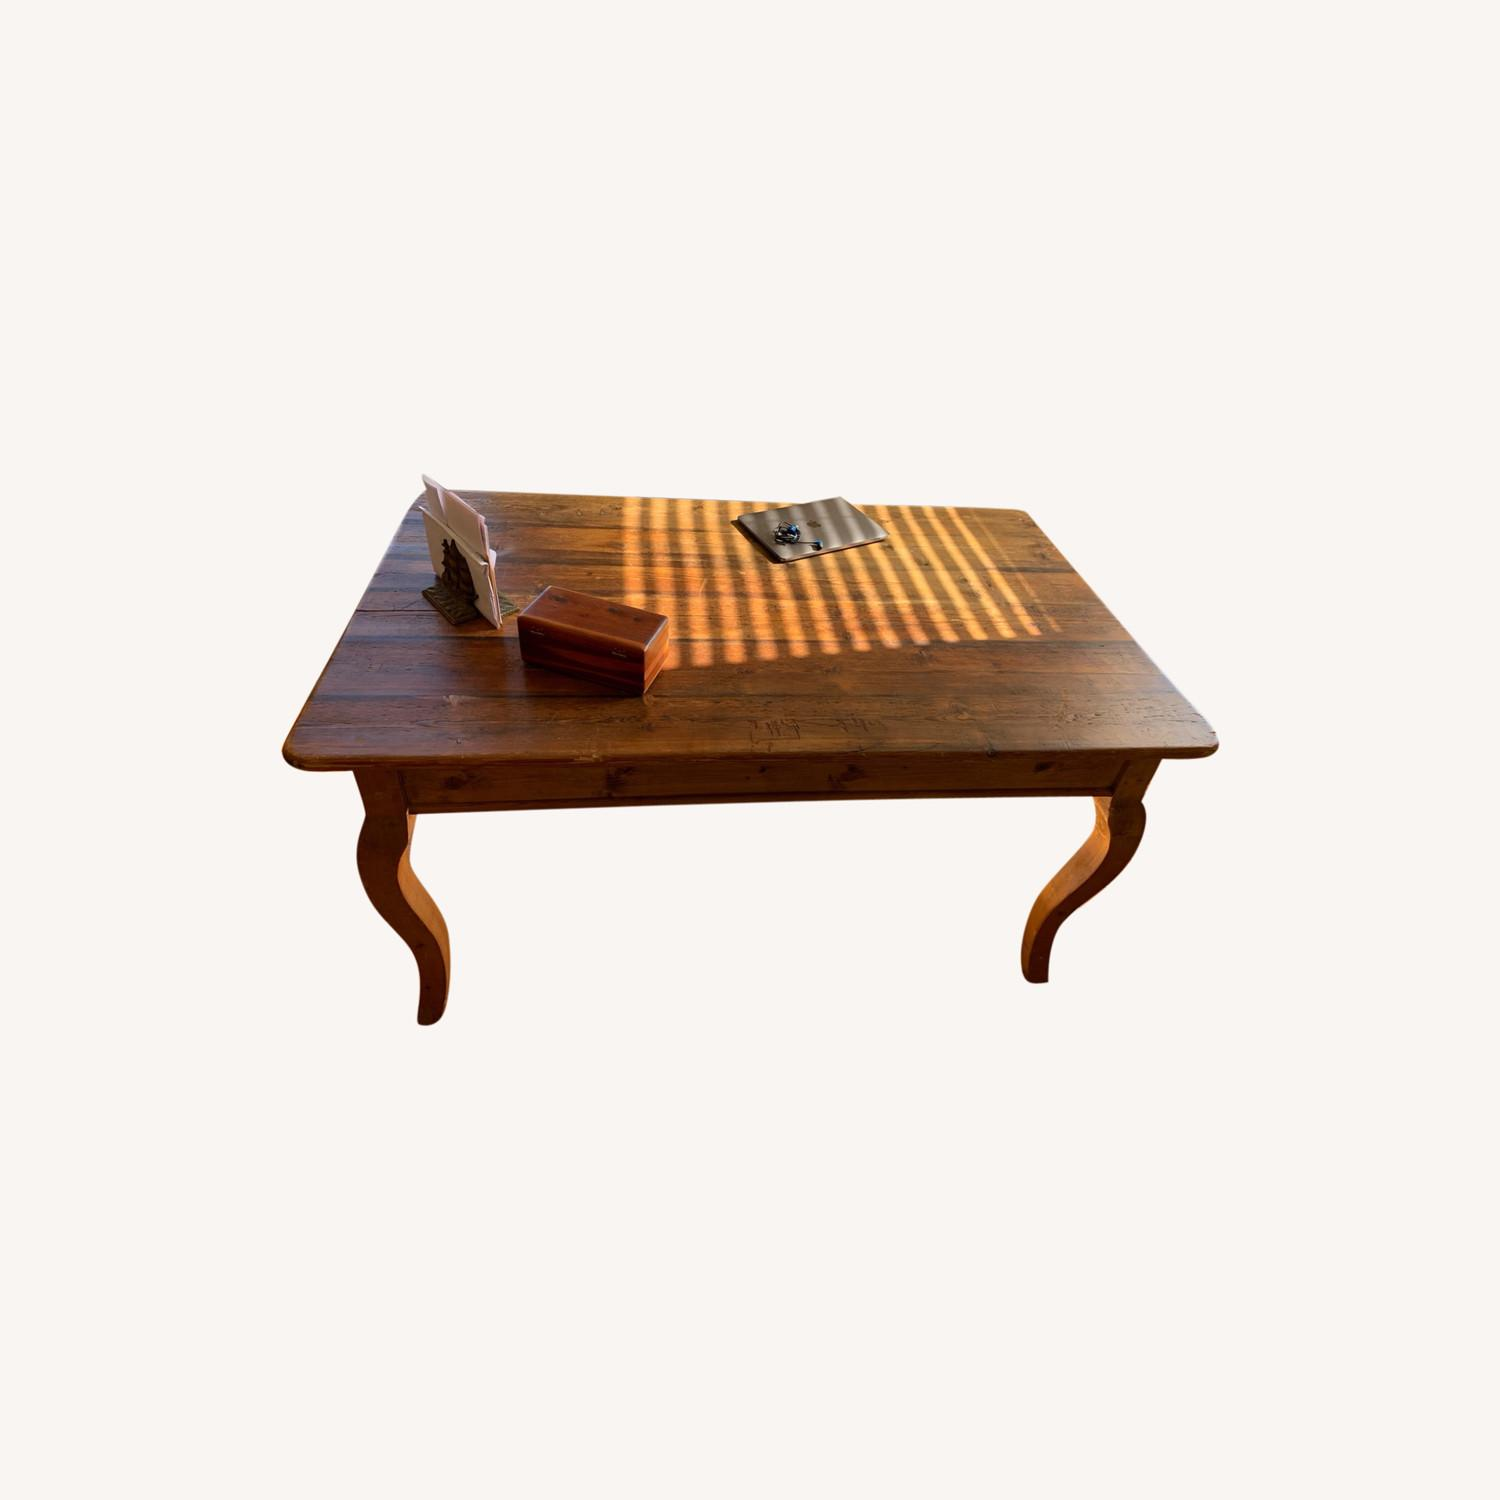 Solid wood French Farm Table (small) - image-0